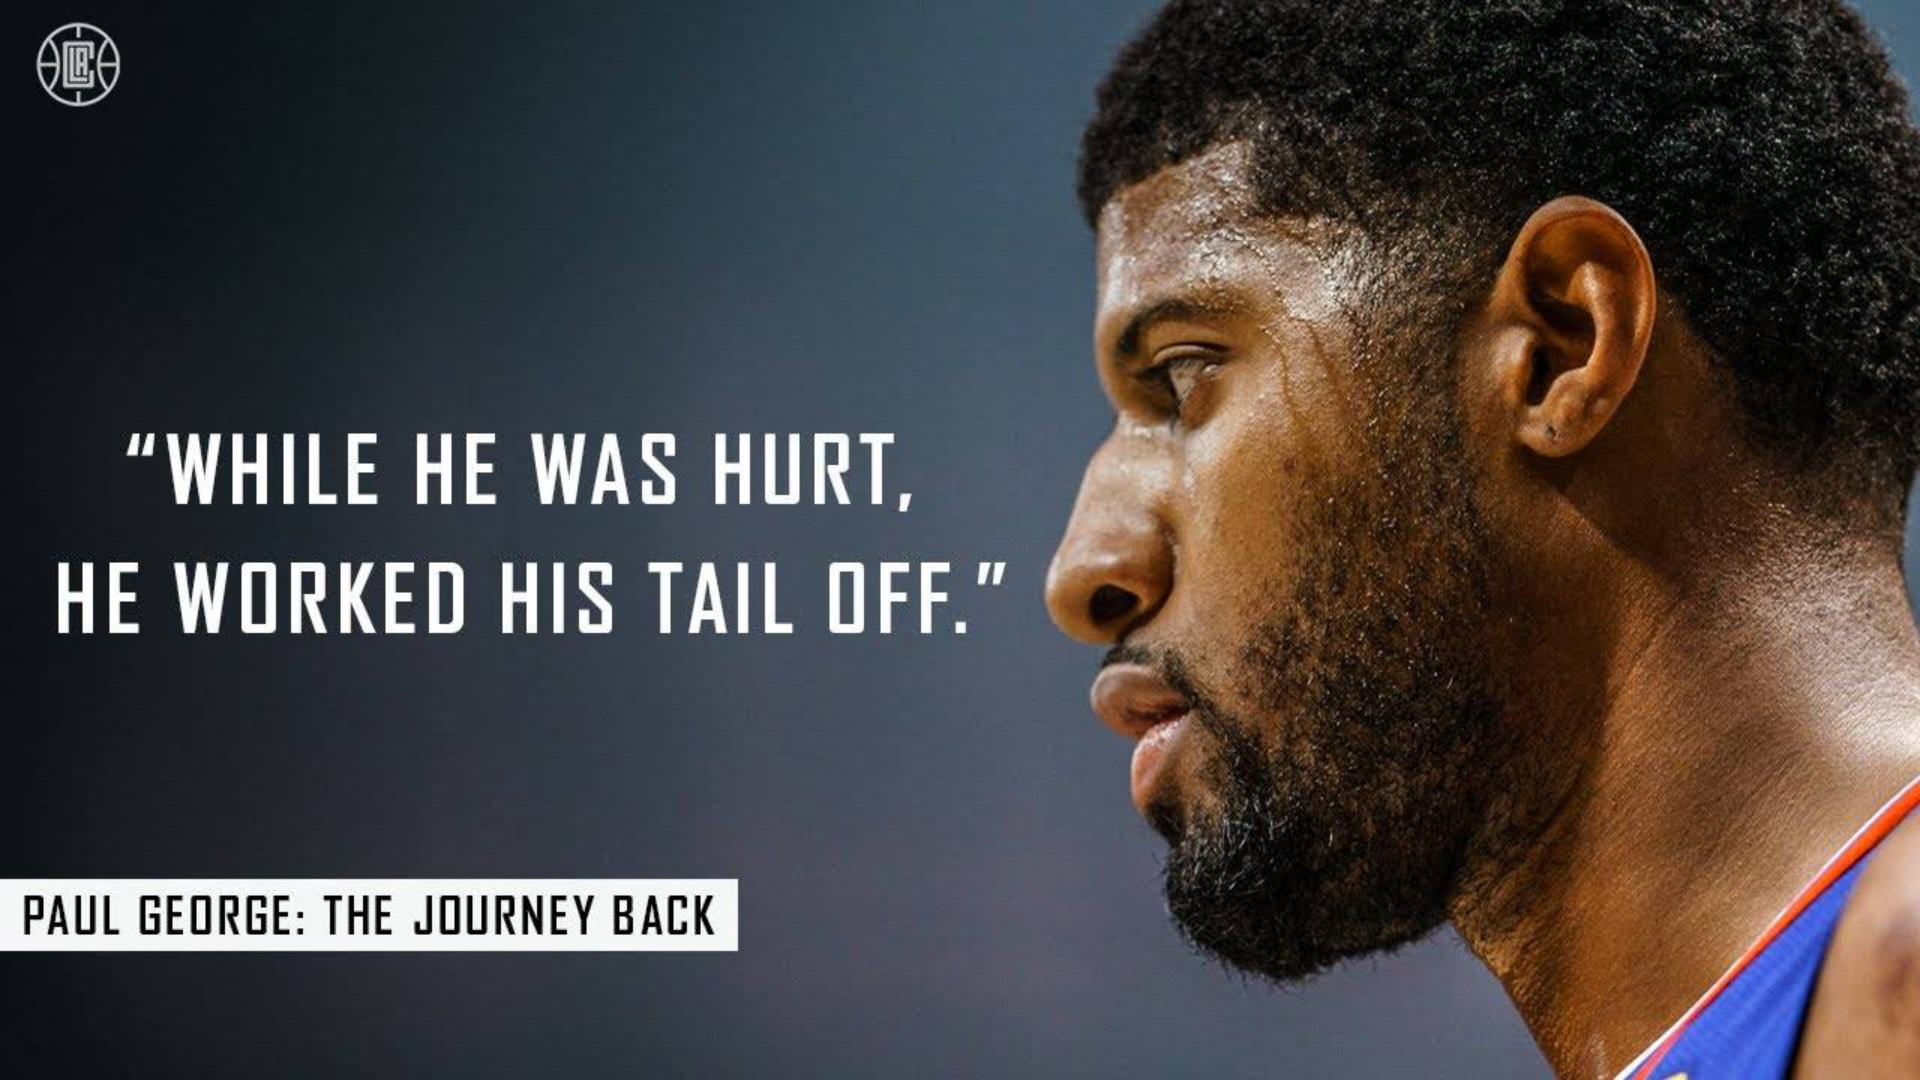 Paul George The Journey Back 保罗乔治最新纪录片归途